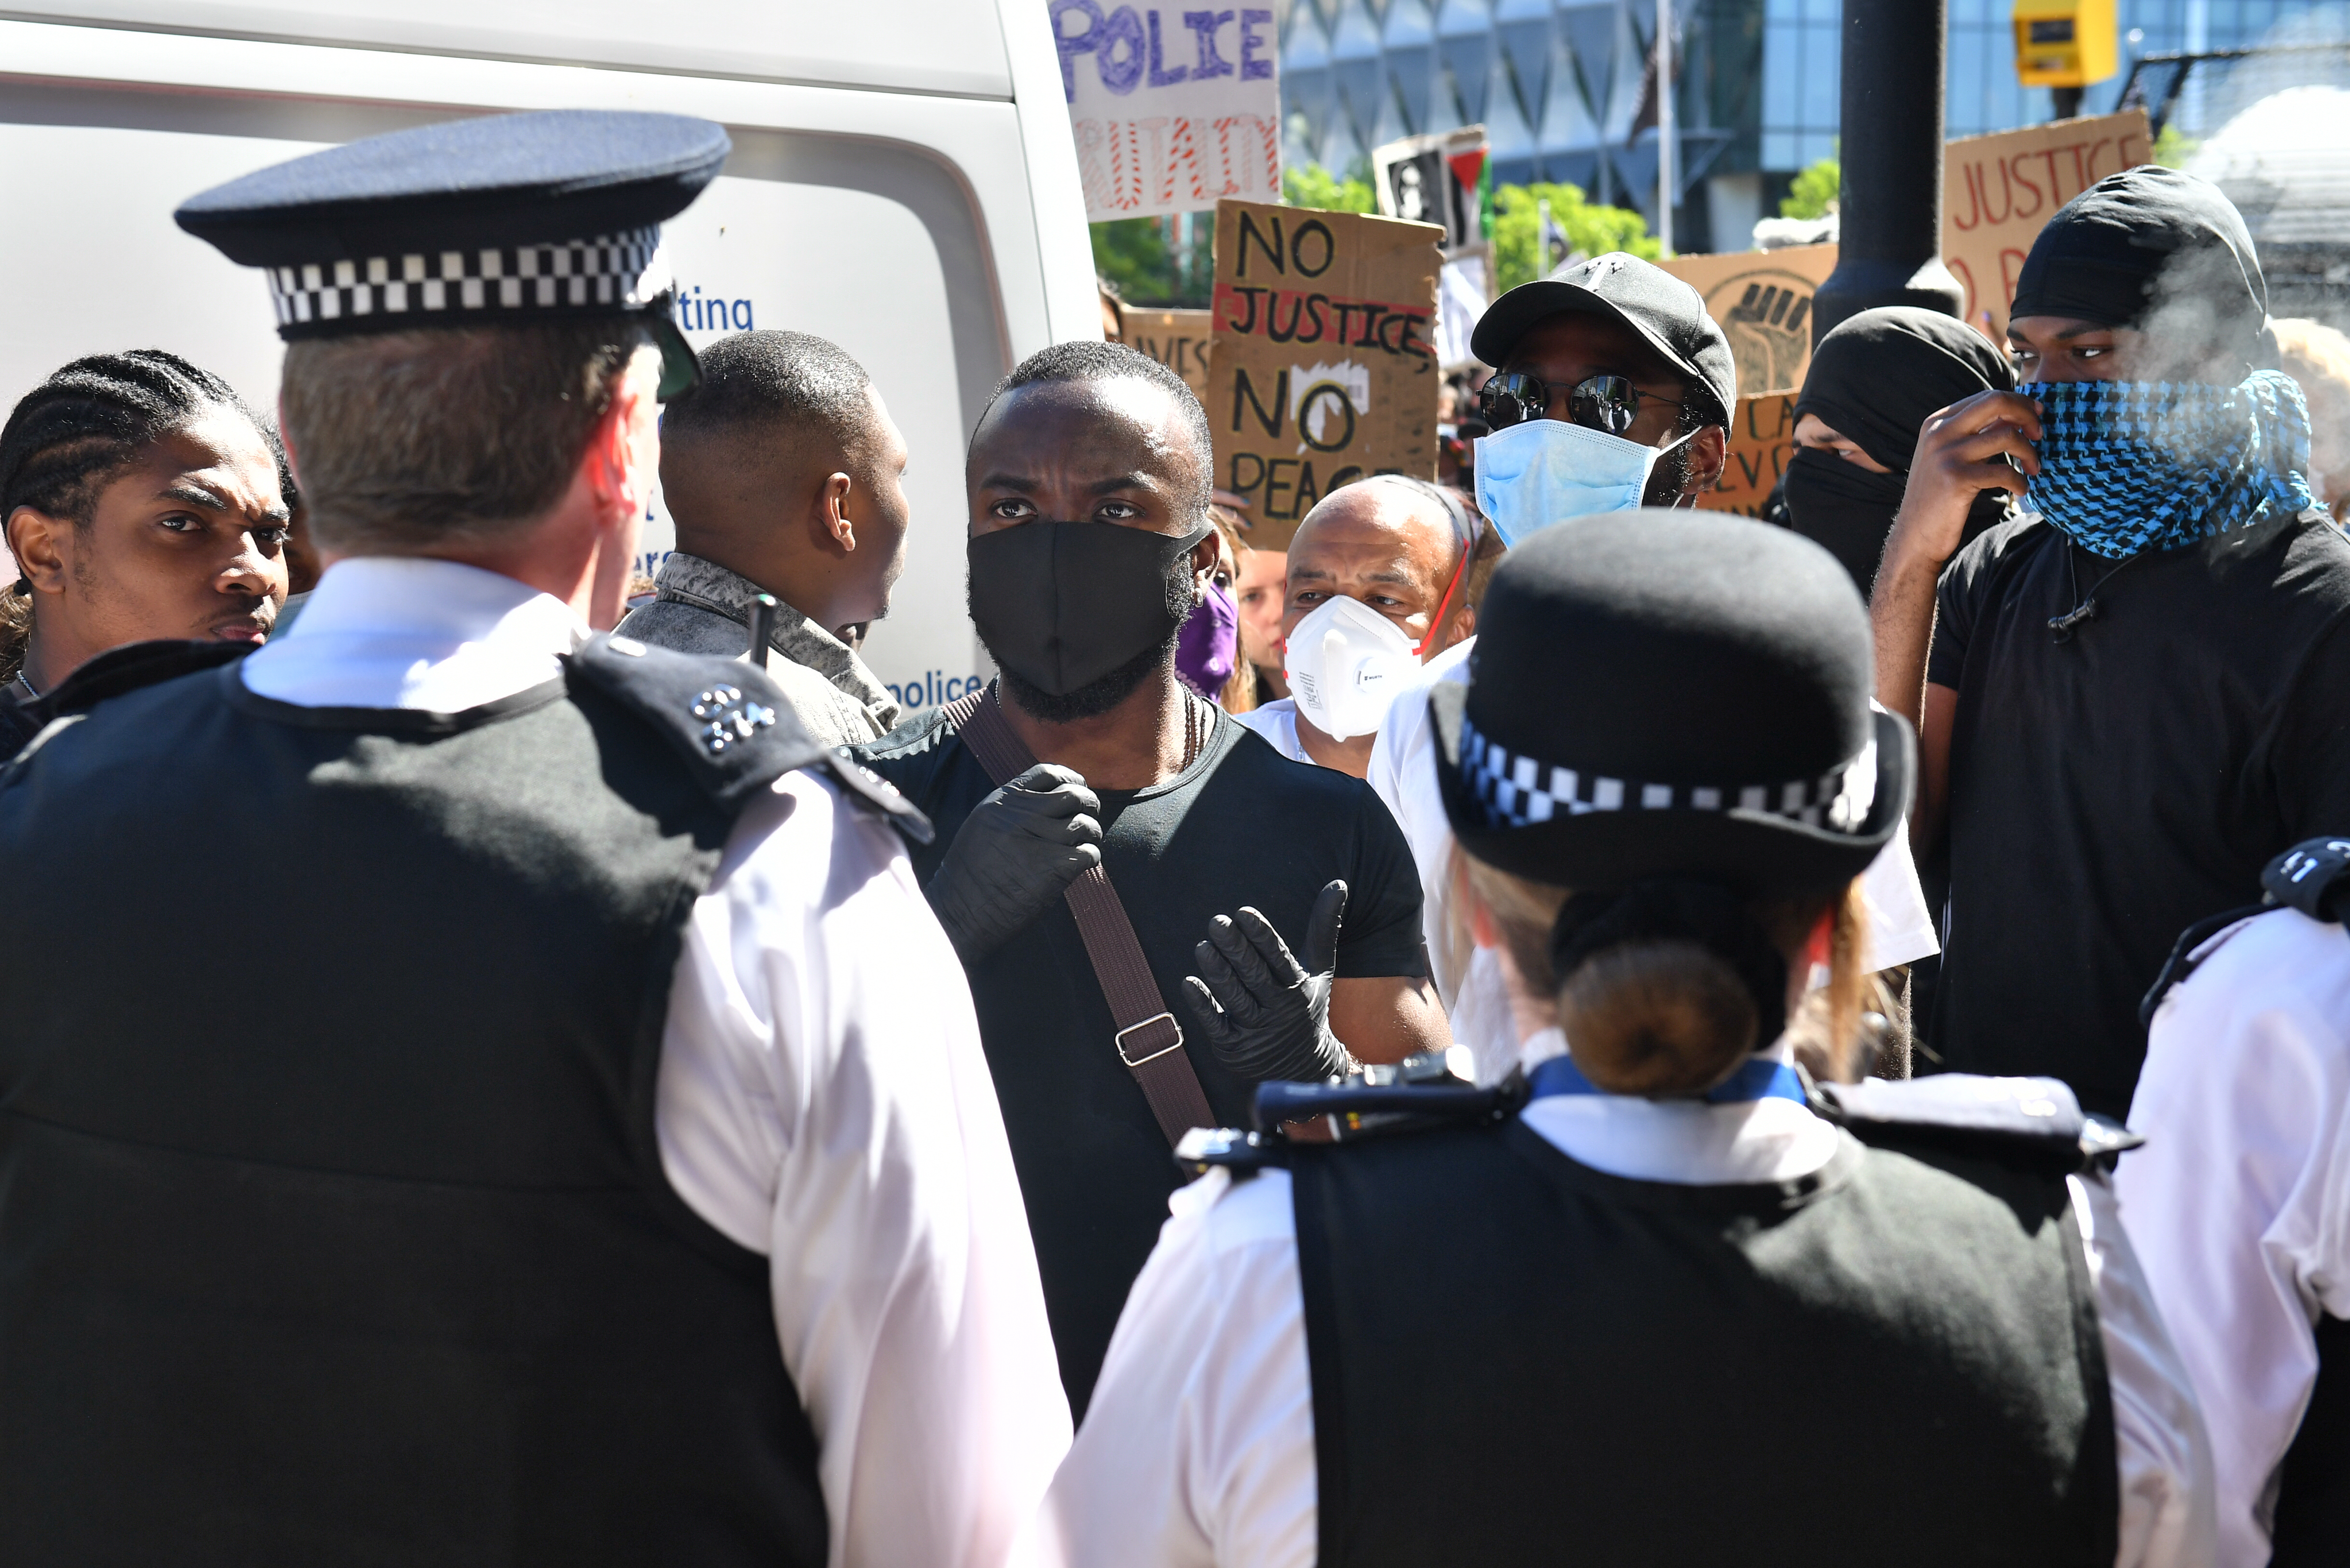 People take part in a Black Lives Matter protest outside the US Embassy in London. The protest follows the death of George Floyd in Minneapolis, US, this week which has seen a police officer charged with third-degree murder. (Photo by Dominic Lipinski/PA Images via Getty Images)